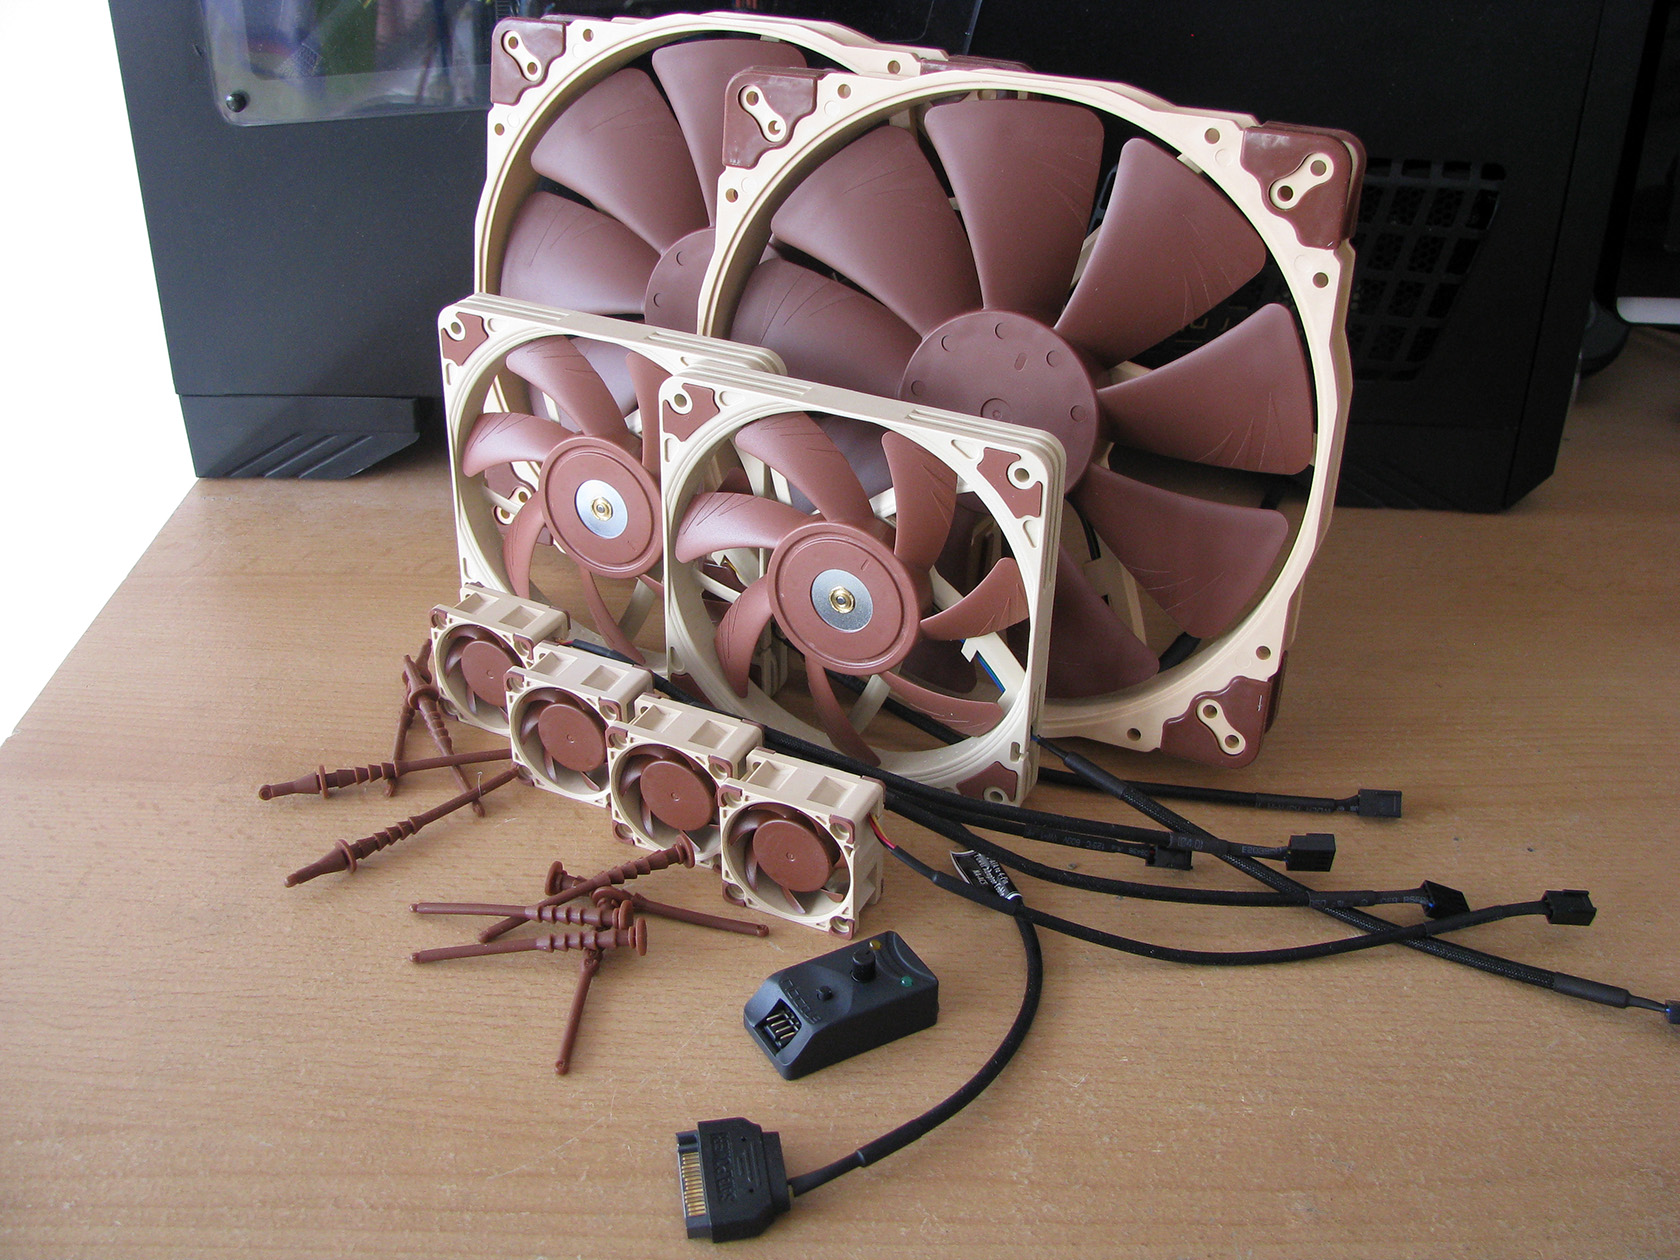 ... Noctua introduced several brand new fans with various dimensions from  40 up to 200mm, which are already included in the A series. Fans, which are  pretty ...